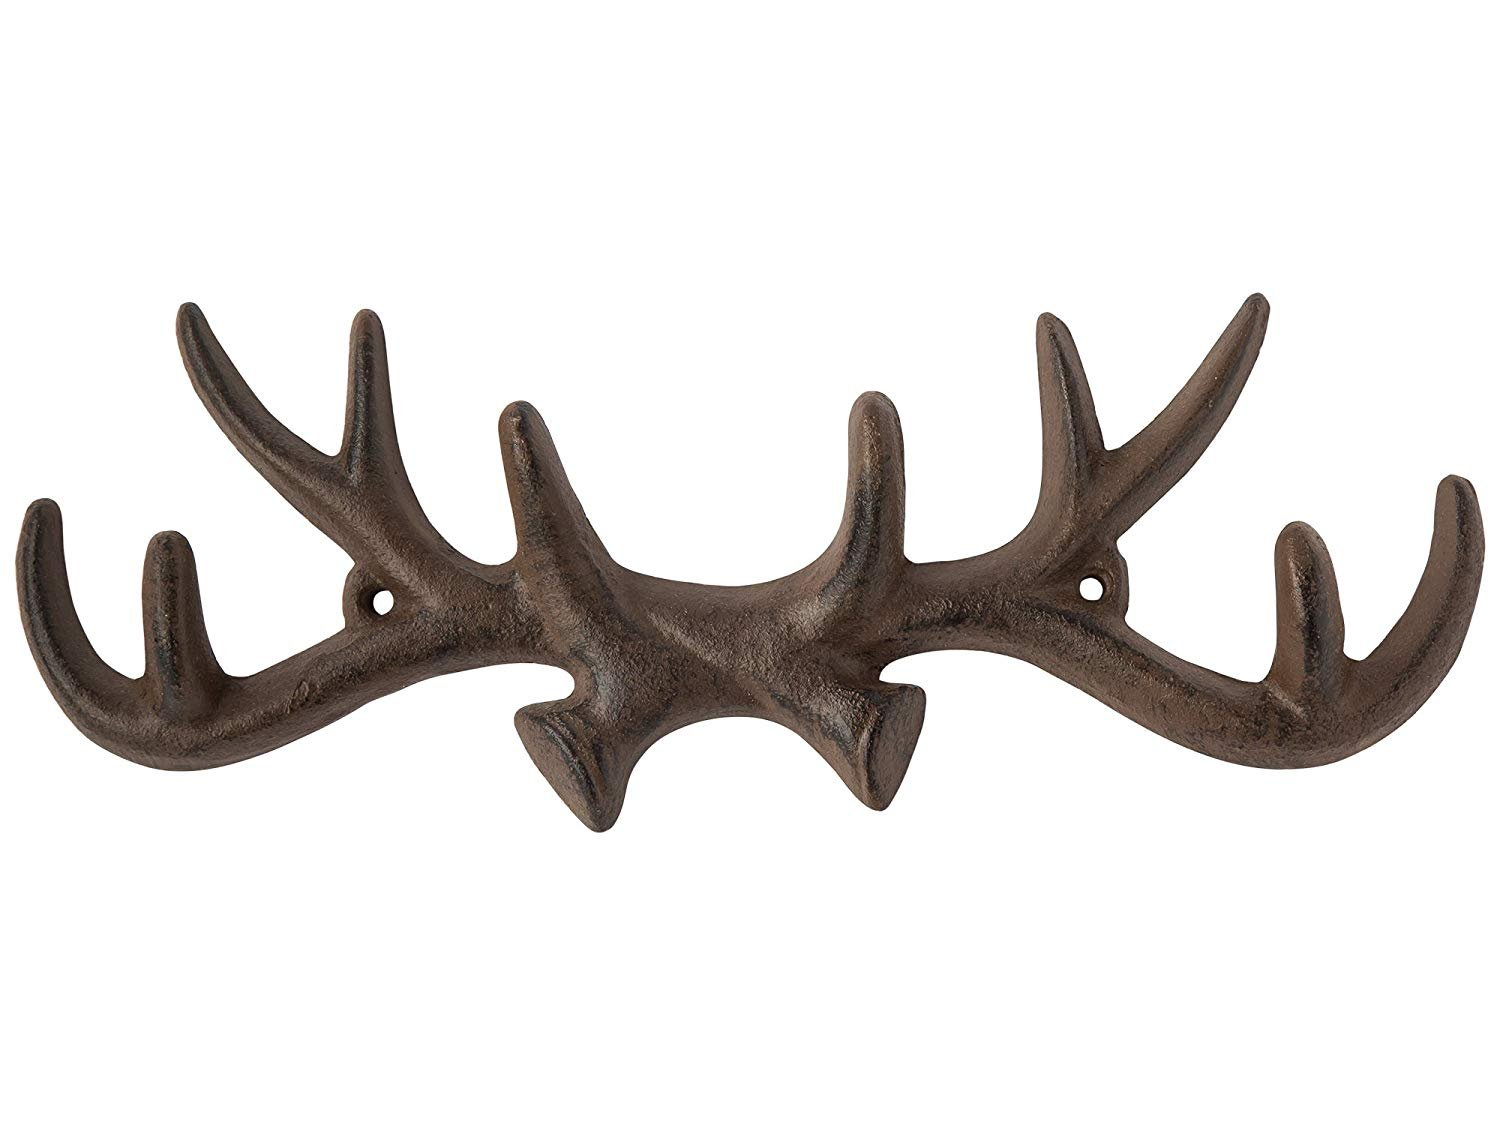 Comfify Vintage Cast Iron Deer Antlers Wall Hooks Antique Finish Metal Clothes Hanger Rack w/Hooks | Includes Screws and Anchors | in Antique White| (Antlers Hook CA-1507-25)